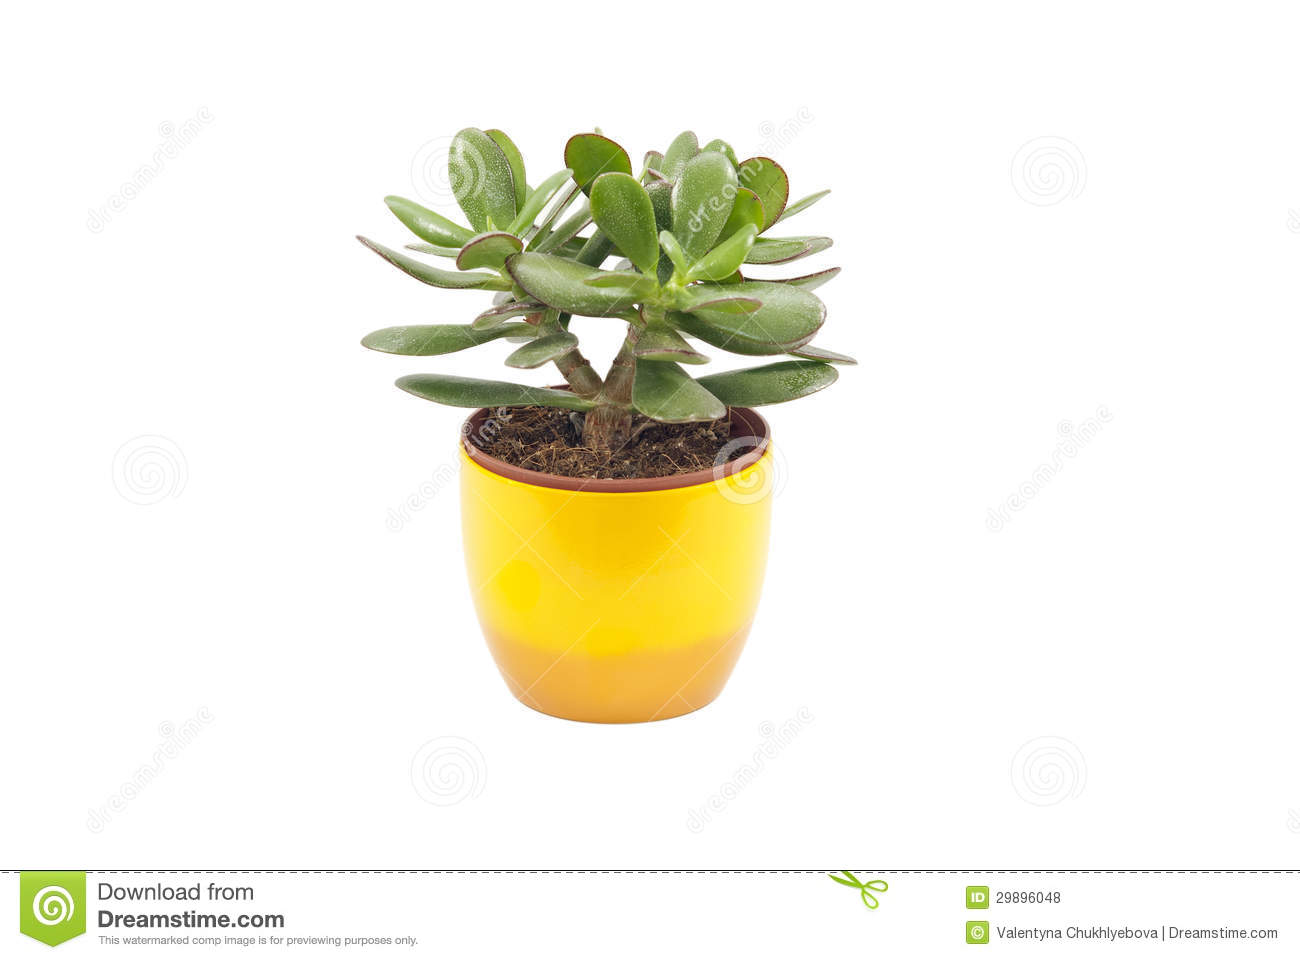 Apartment bathroom themes - Green Succulent Plant In The Yellow Pot Isolated On White Background